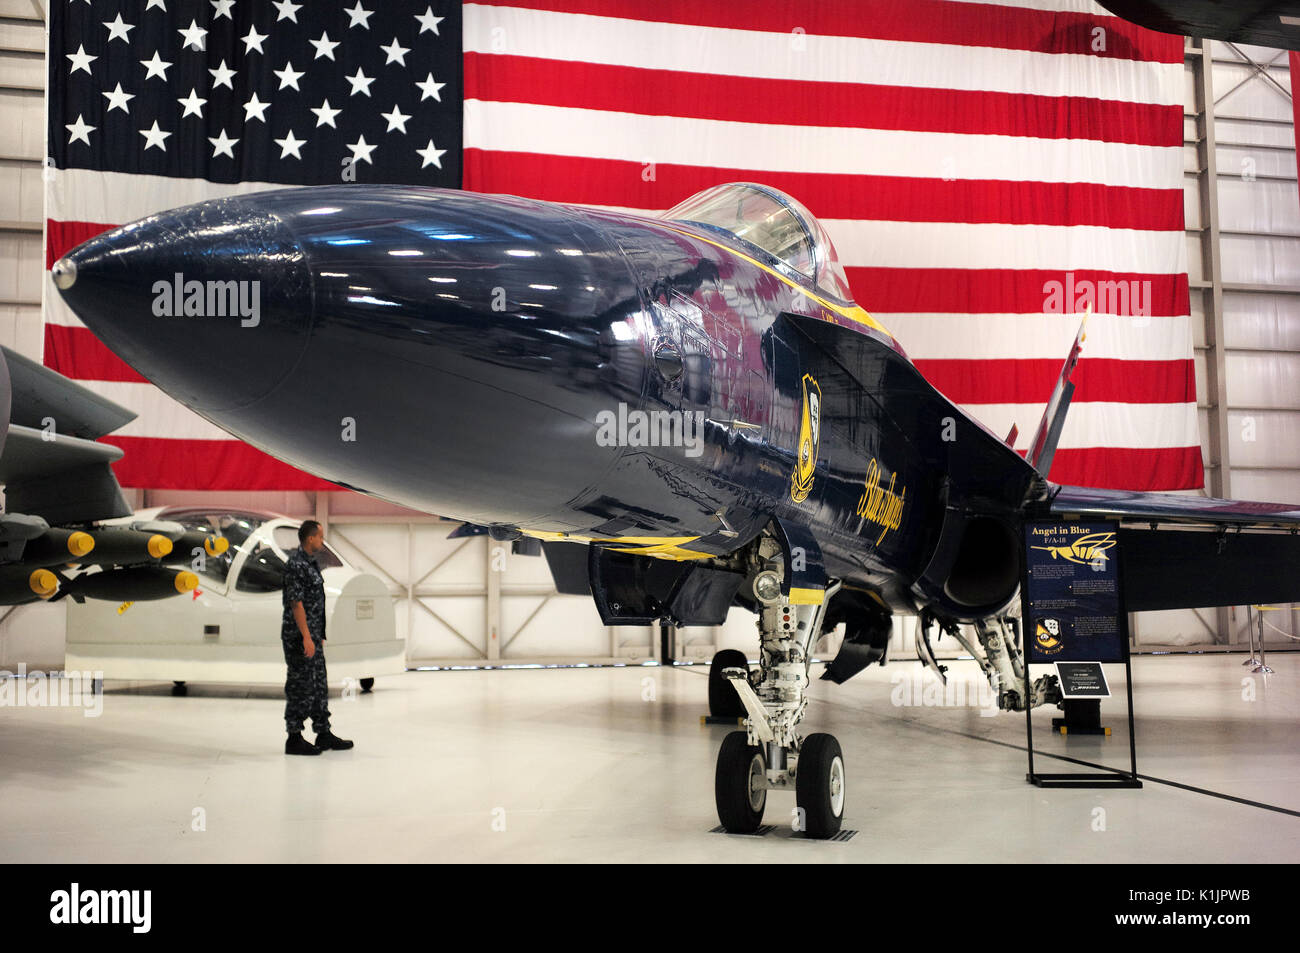 FA-18 Hornet Blue Angels at National Naval Aviation Museum Stock Photo